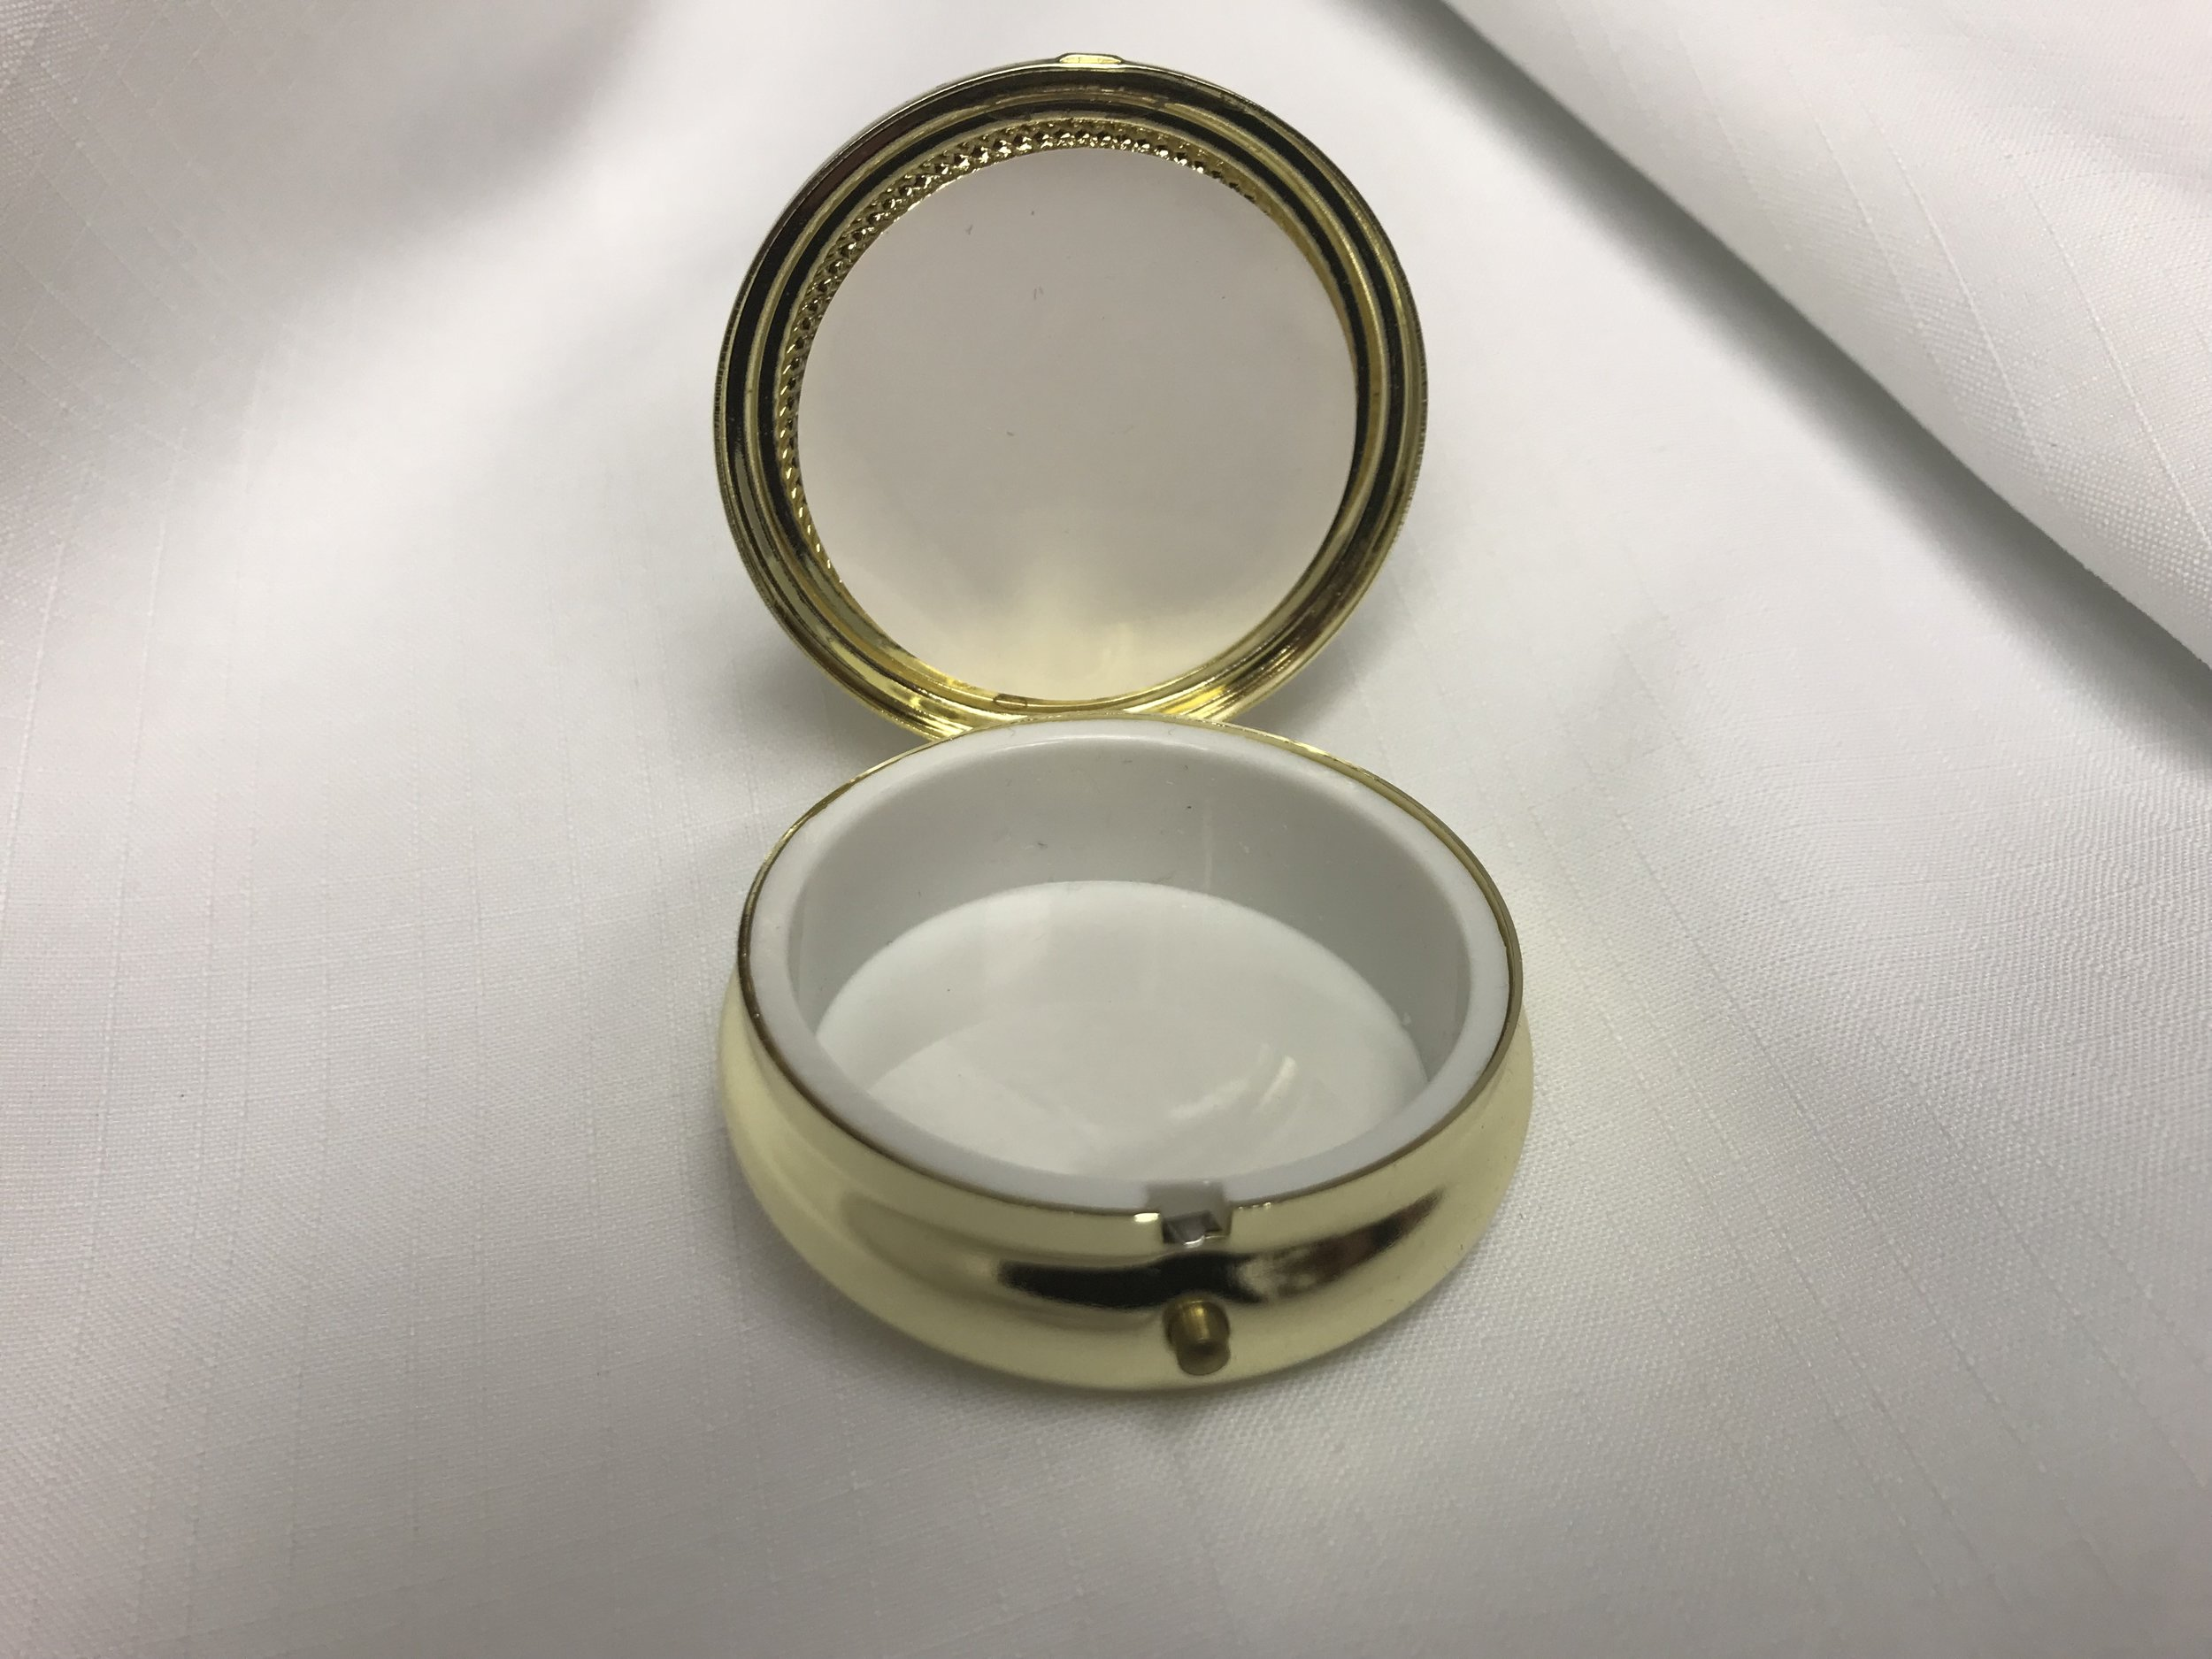 Pyx that holds the Eucharist